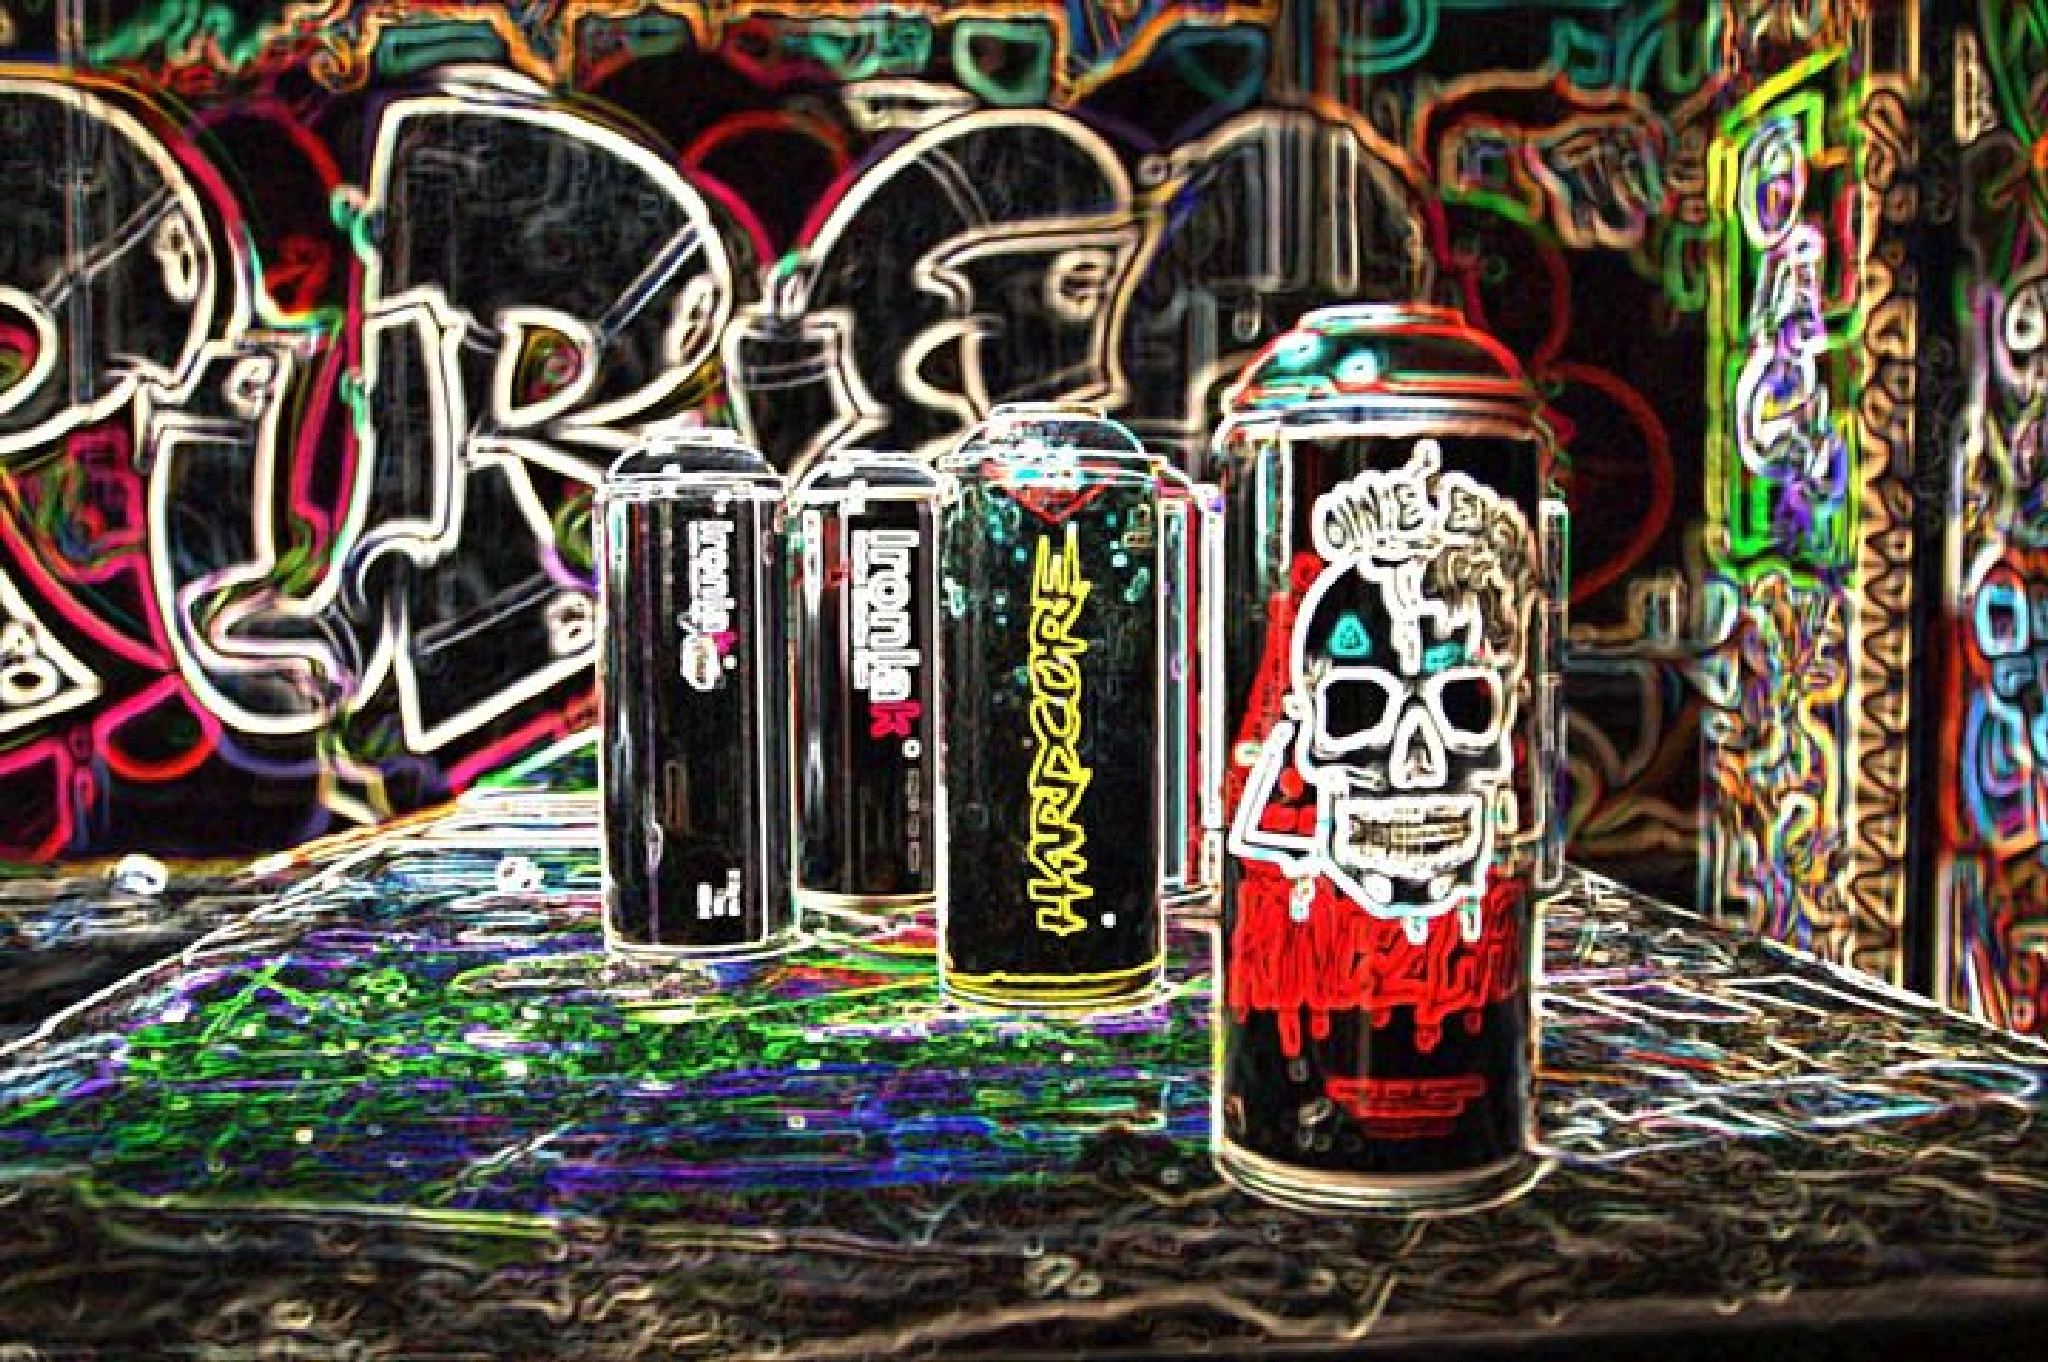 graffiti art tools by LeanneT